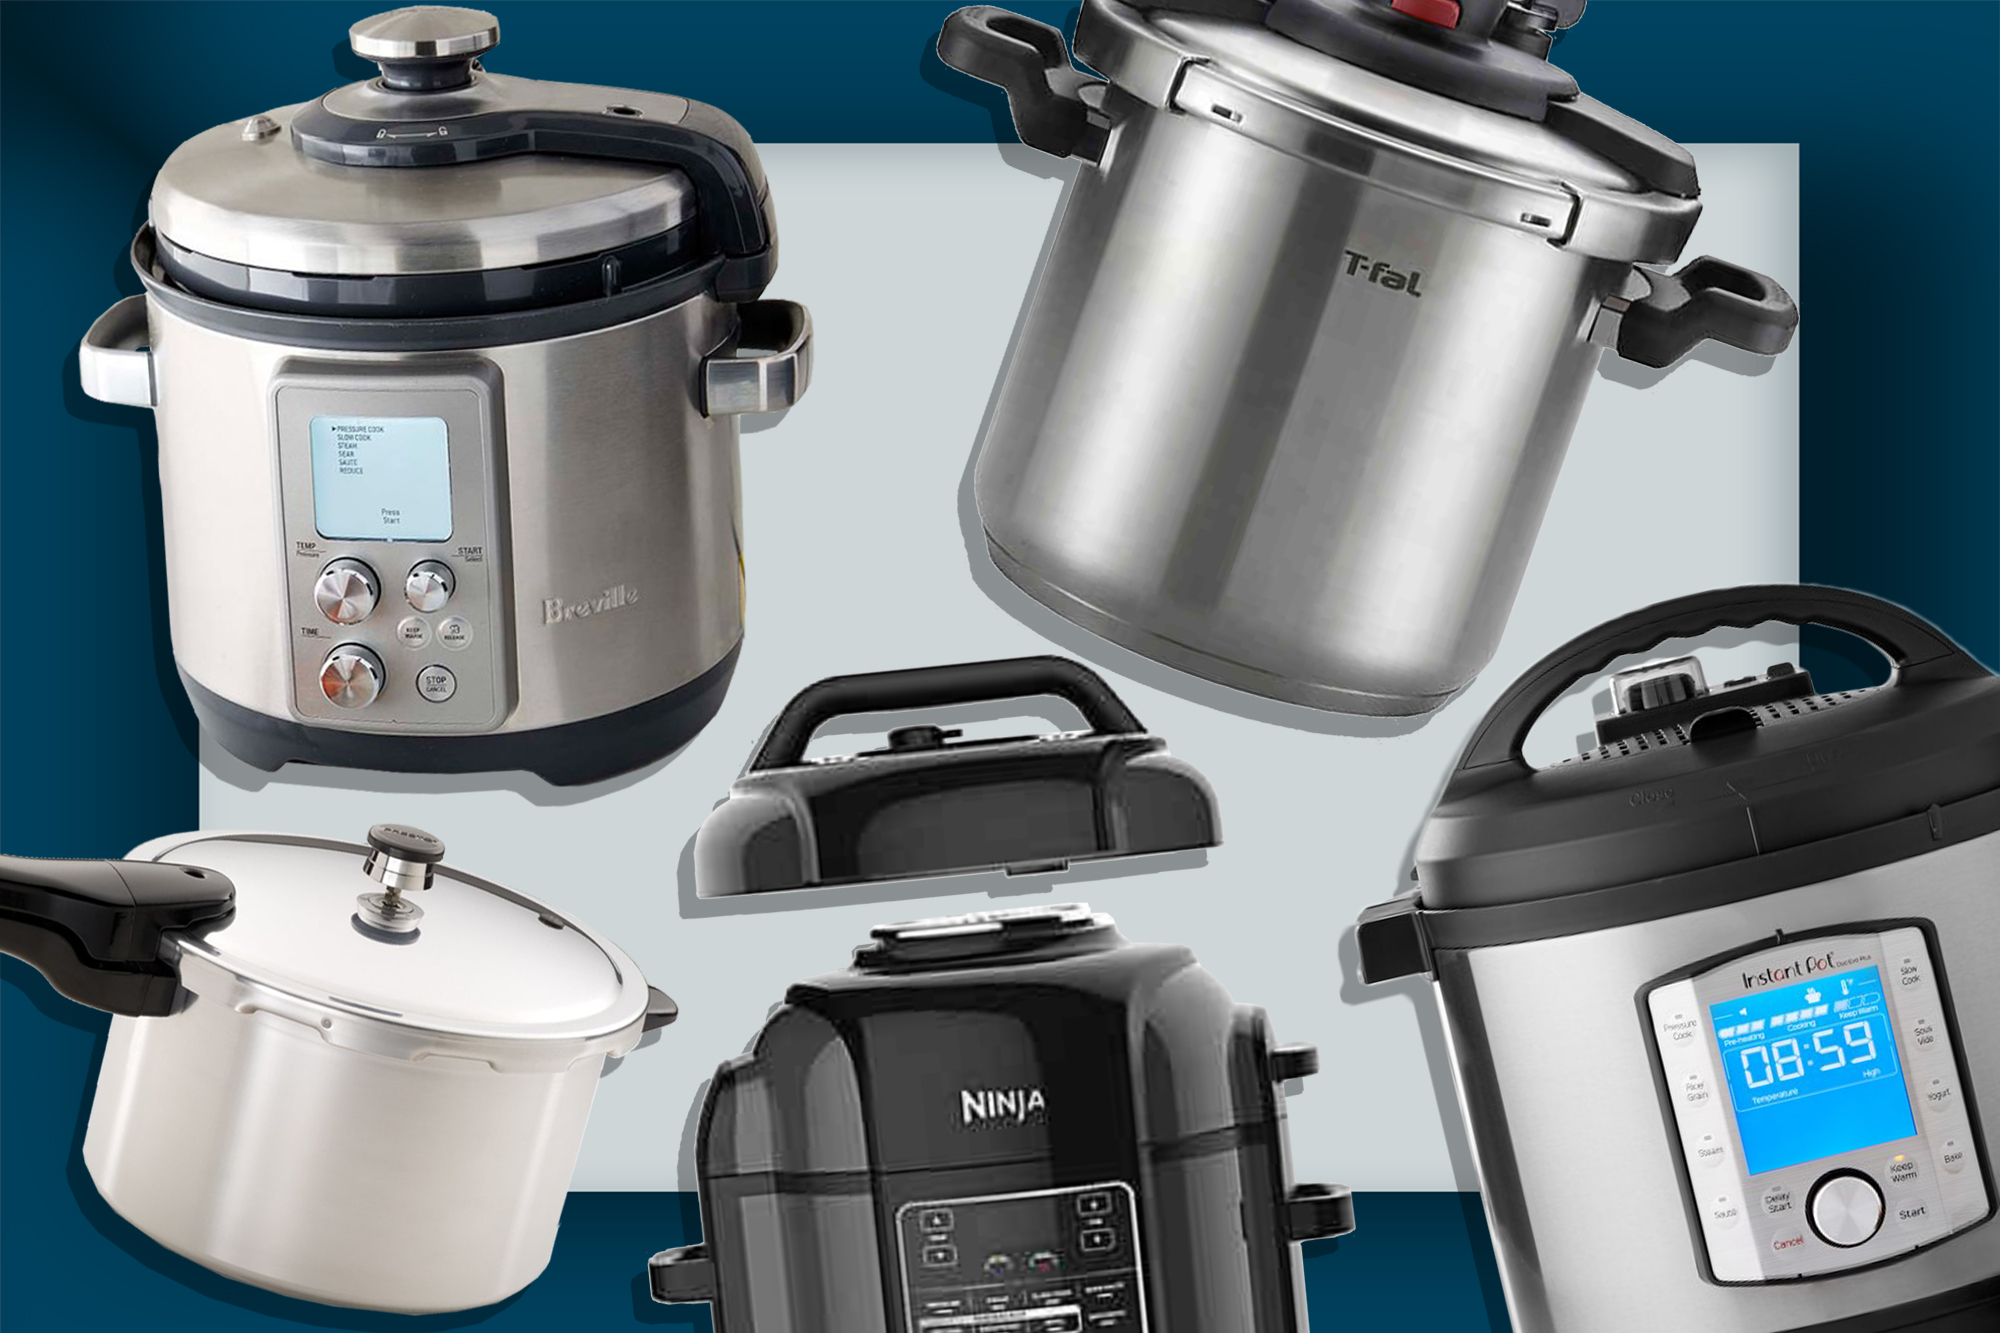 The 7 Best Pressure Cookers for 2020 | Food & Wine